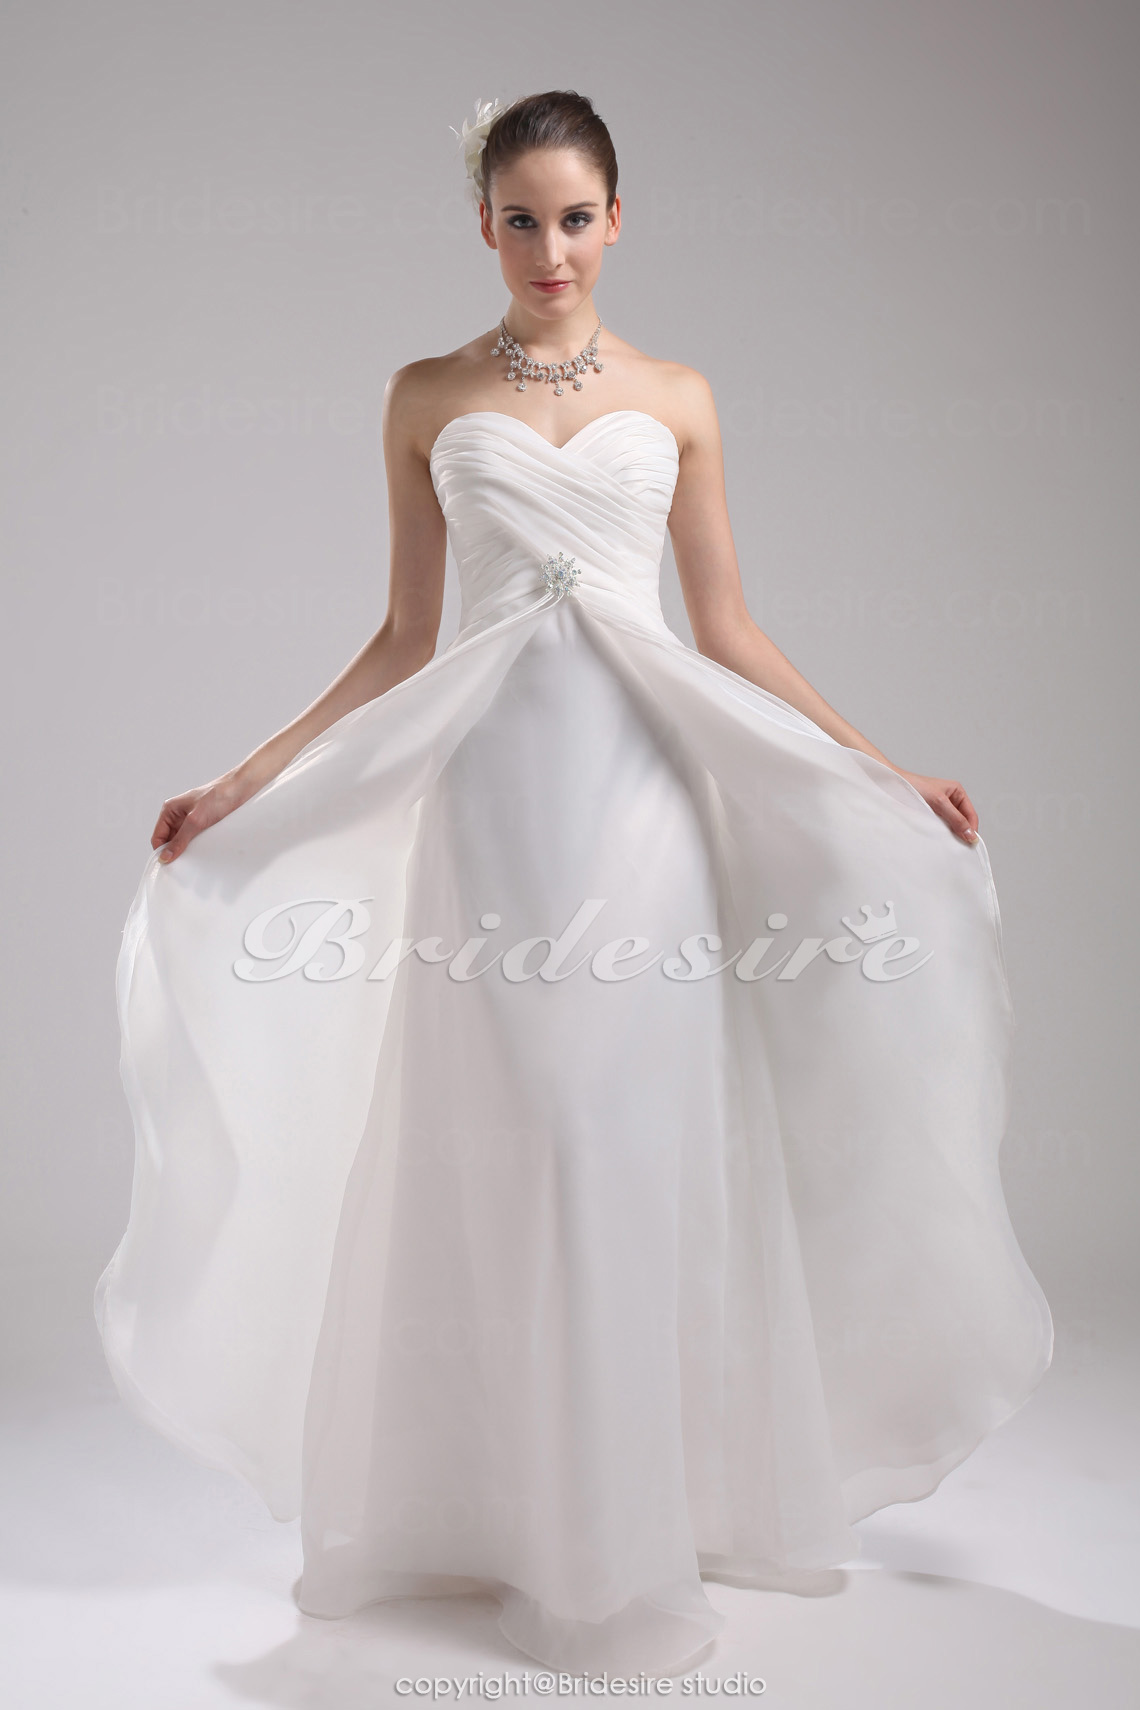 A-line Sweetheart Floor-length Sleeveless Organza Wedding Dress